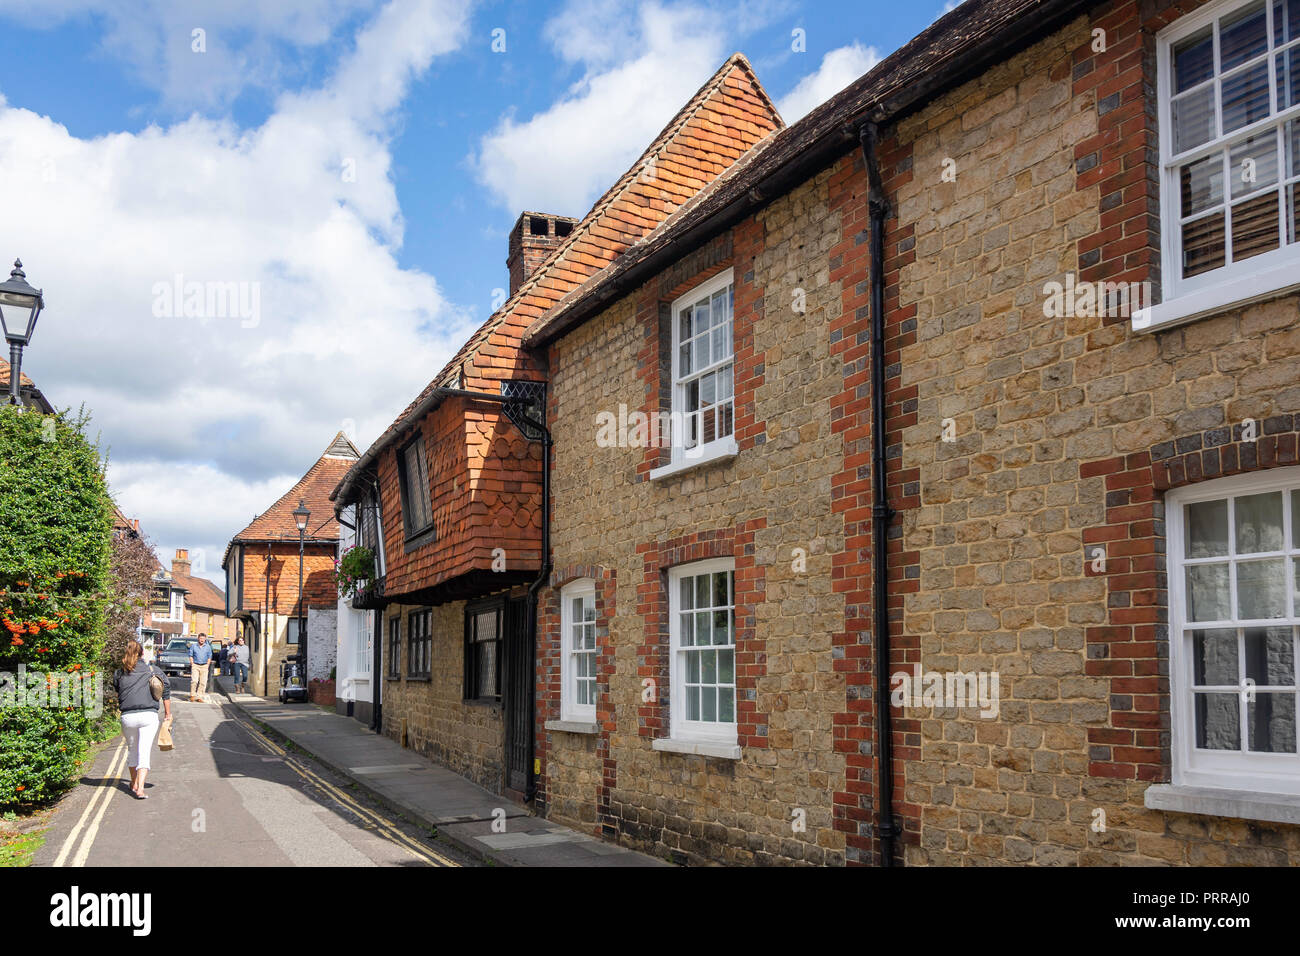 Period houses, Wool Lane, Midhurst, West Sussex, England, United Kingdom - Stock Image